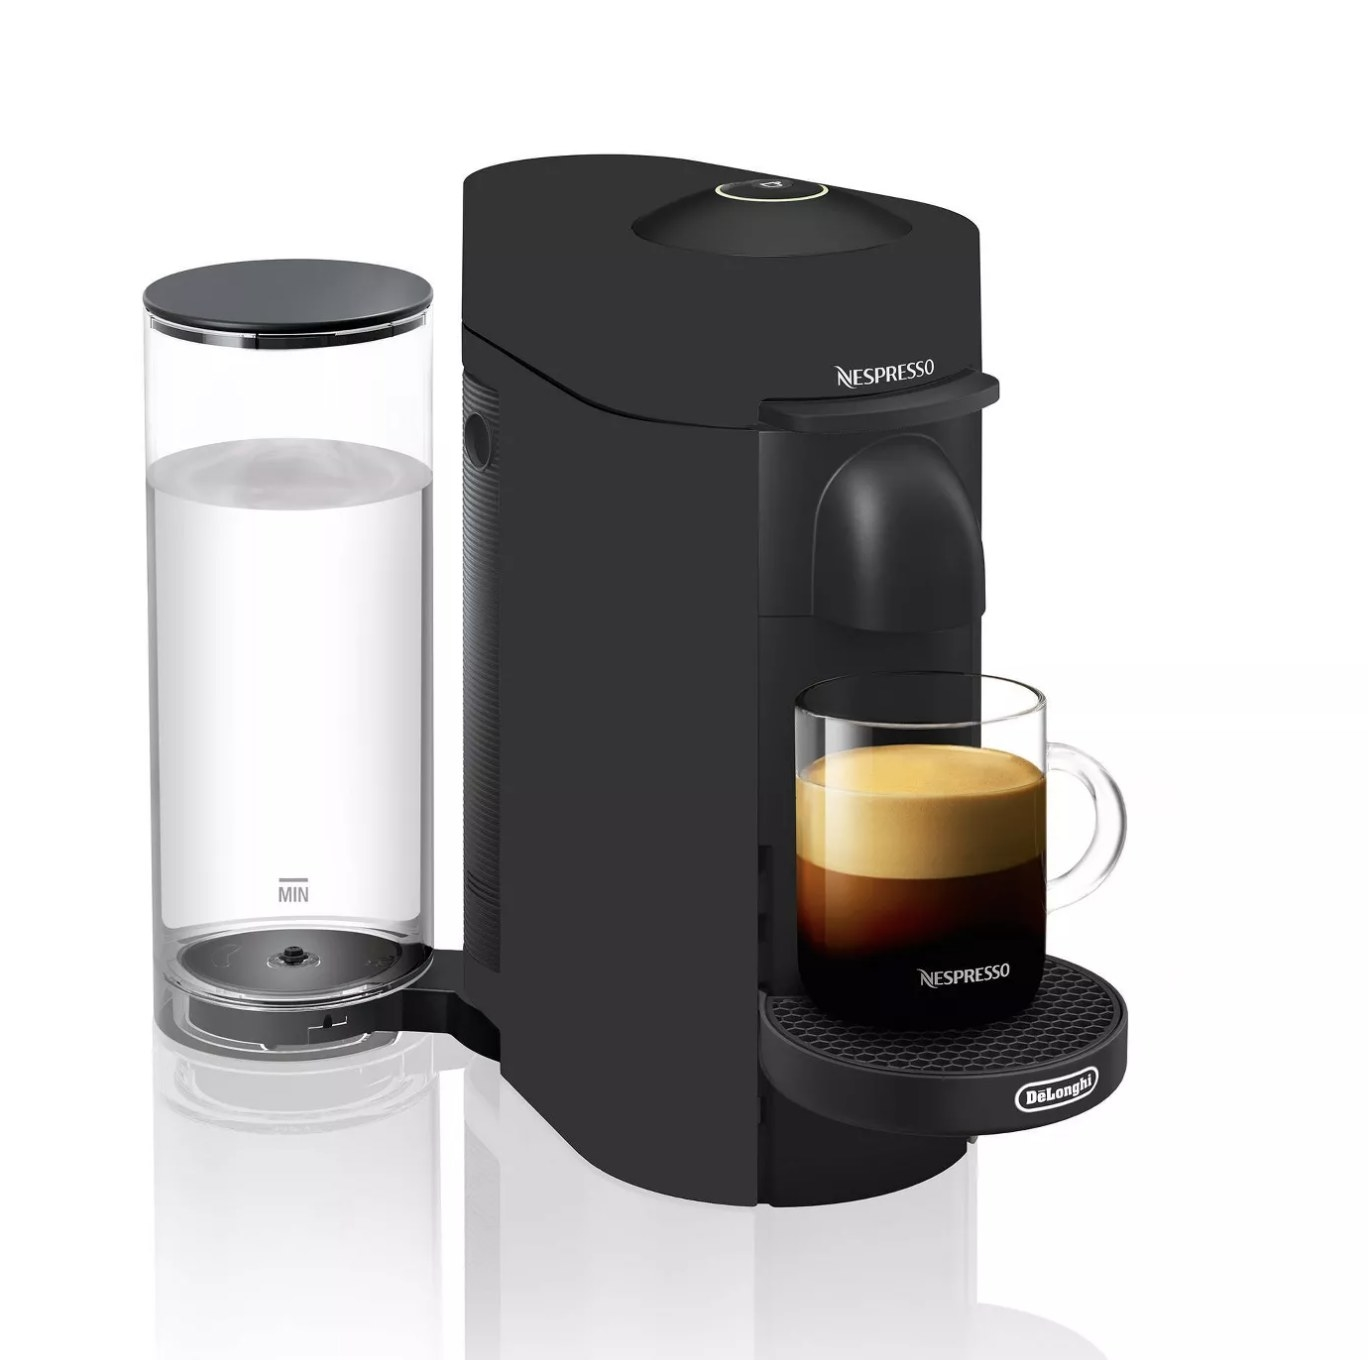 A black expresso machine with a glass mug on the base with expresso inside and a white container holding water behind it